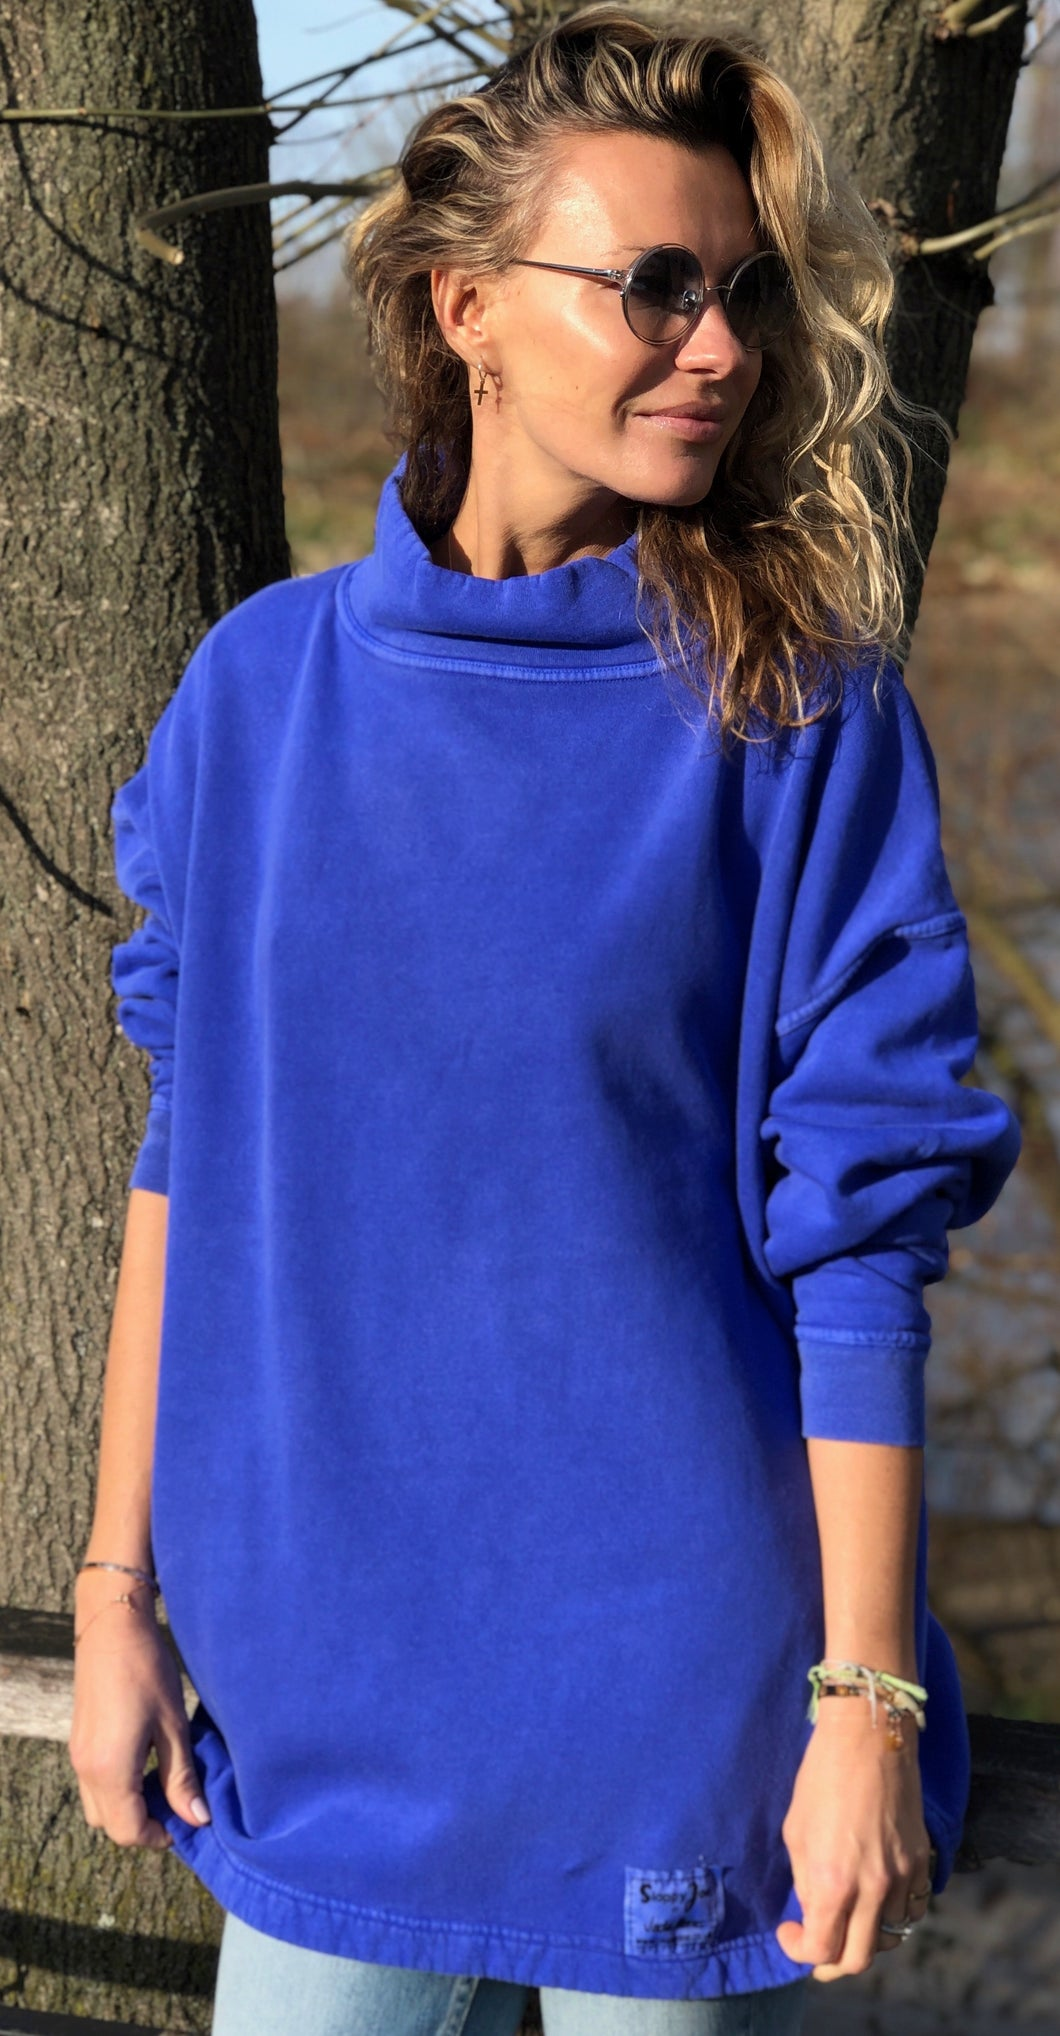 HIGH NECK SWEATSHIRT - Hyacinth Wash